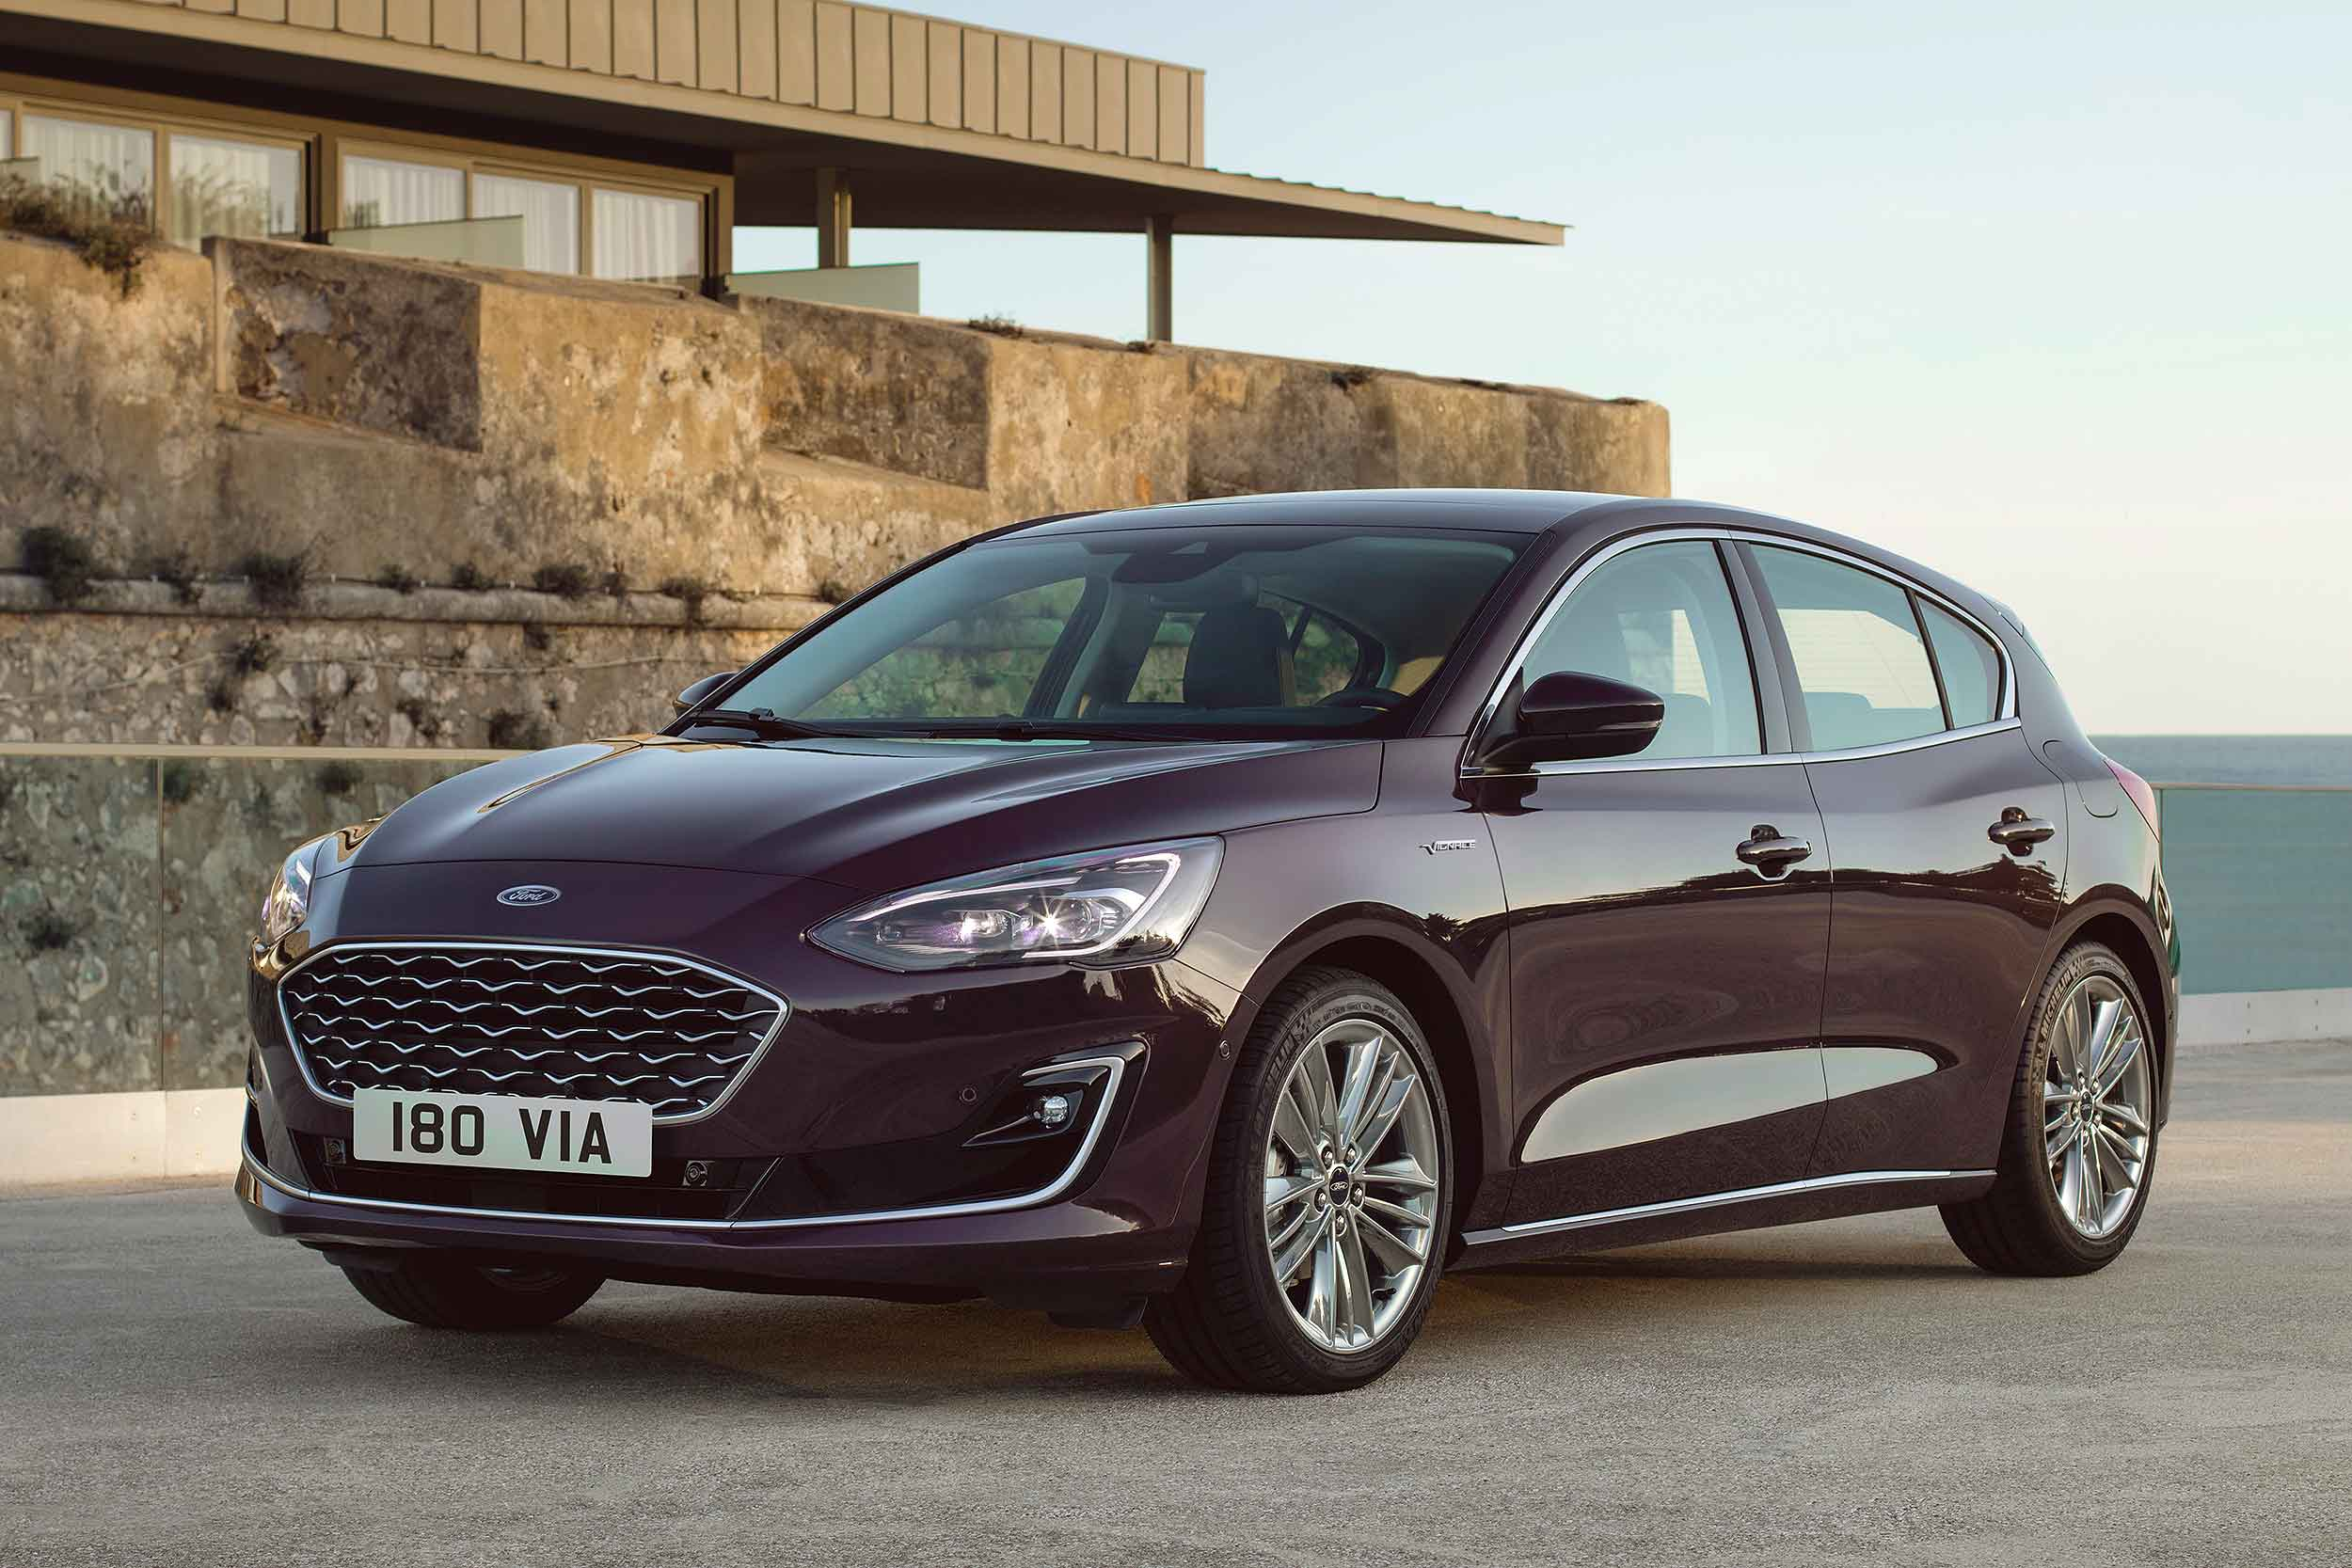 New 2018 Ford Focus prices from £17,930 | Motoring Research